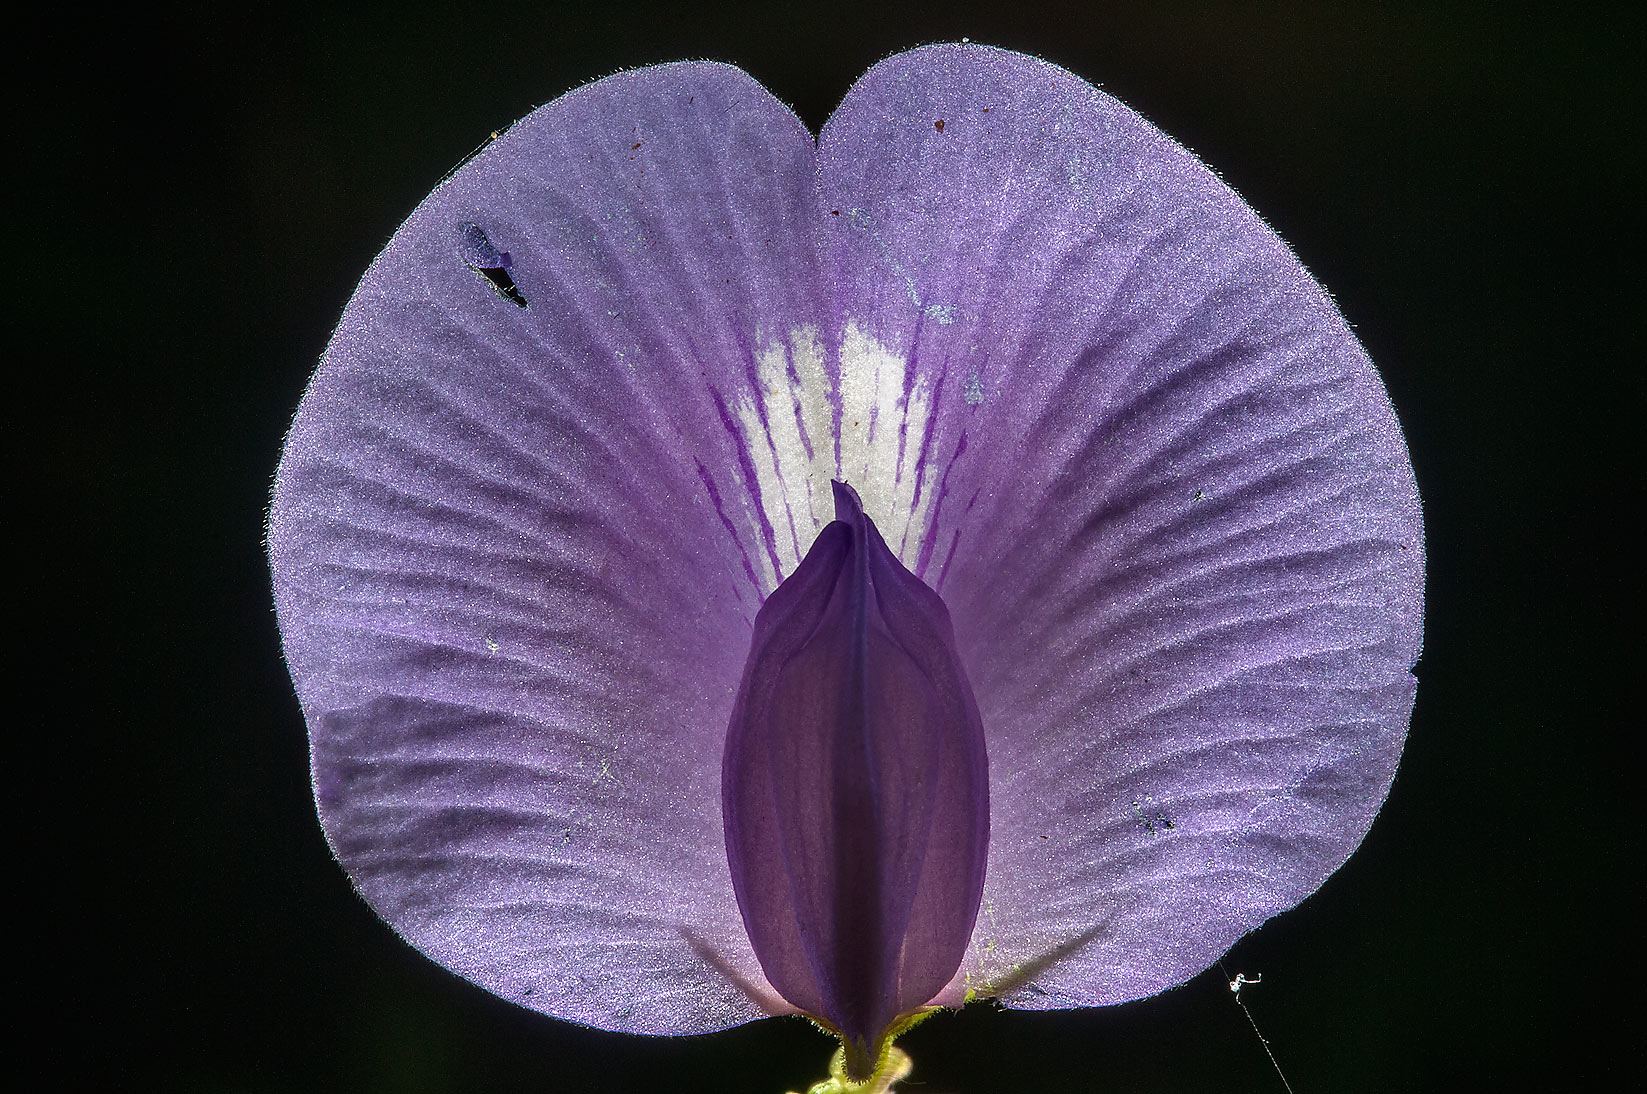 Back lit flower of Butterfly pea (Centrosema...National Forest. Richards, Texas